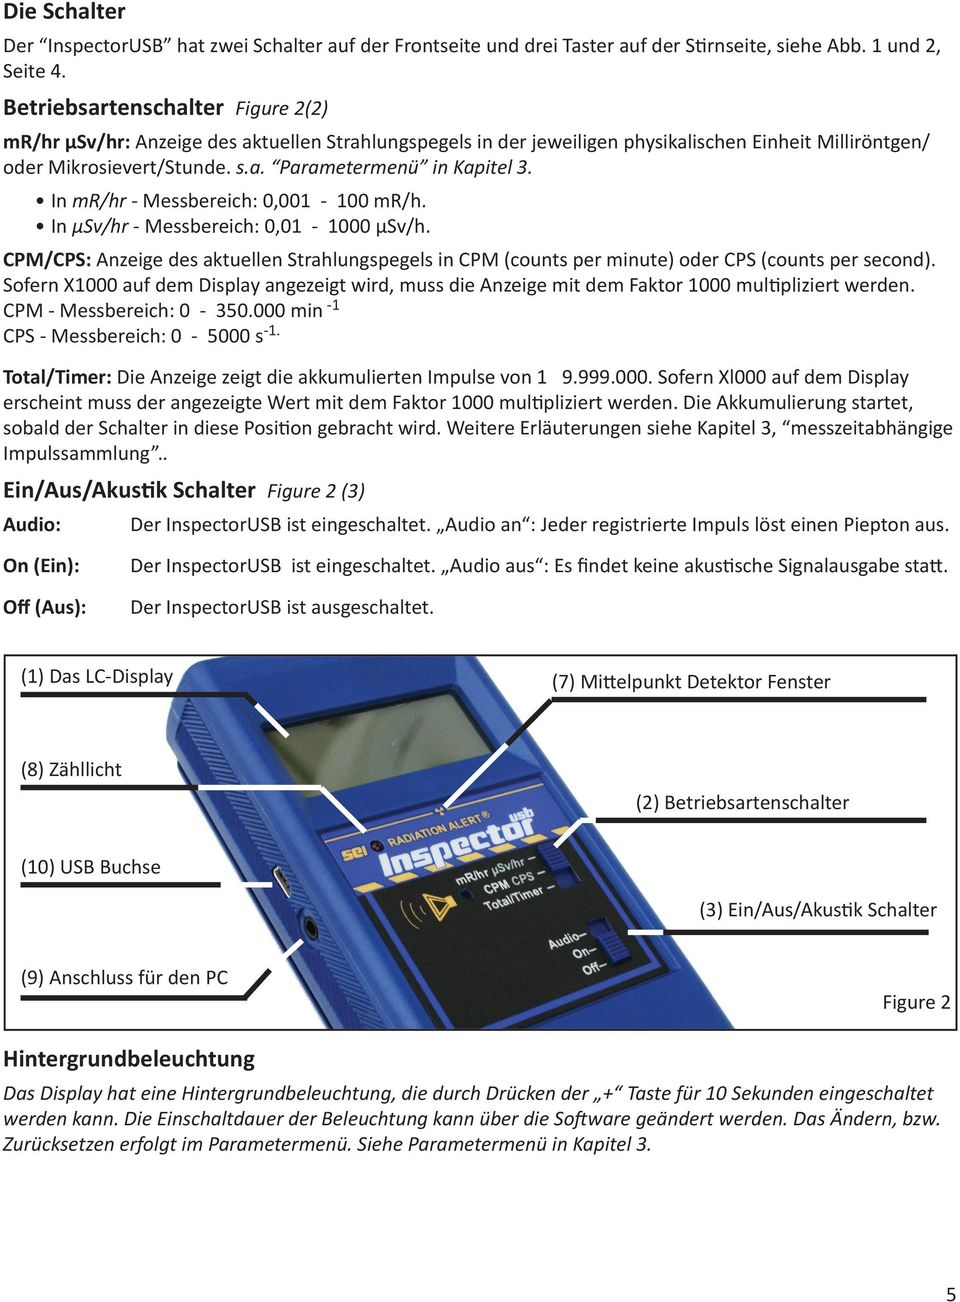 In mr/hr - Messbereich: 0,001-100 mr/h. In µsv/hr - Messbereich: 0,01-1000 µsv/h. CPM/CPS: Anzeige des aktuellen Strahlungspegels in CPM (counts per minute) oder CPS (counts per second).